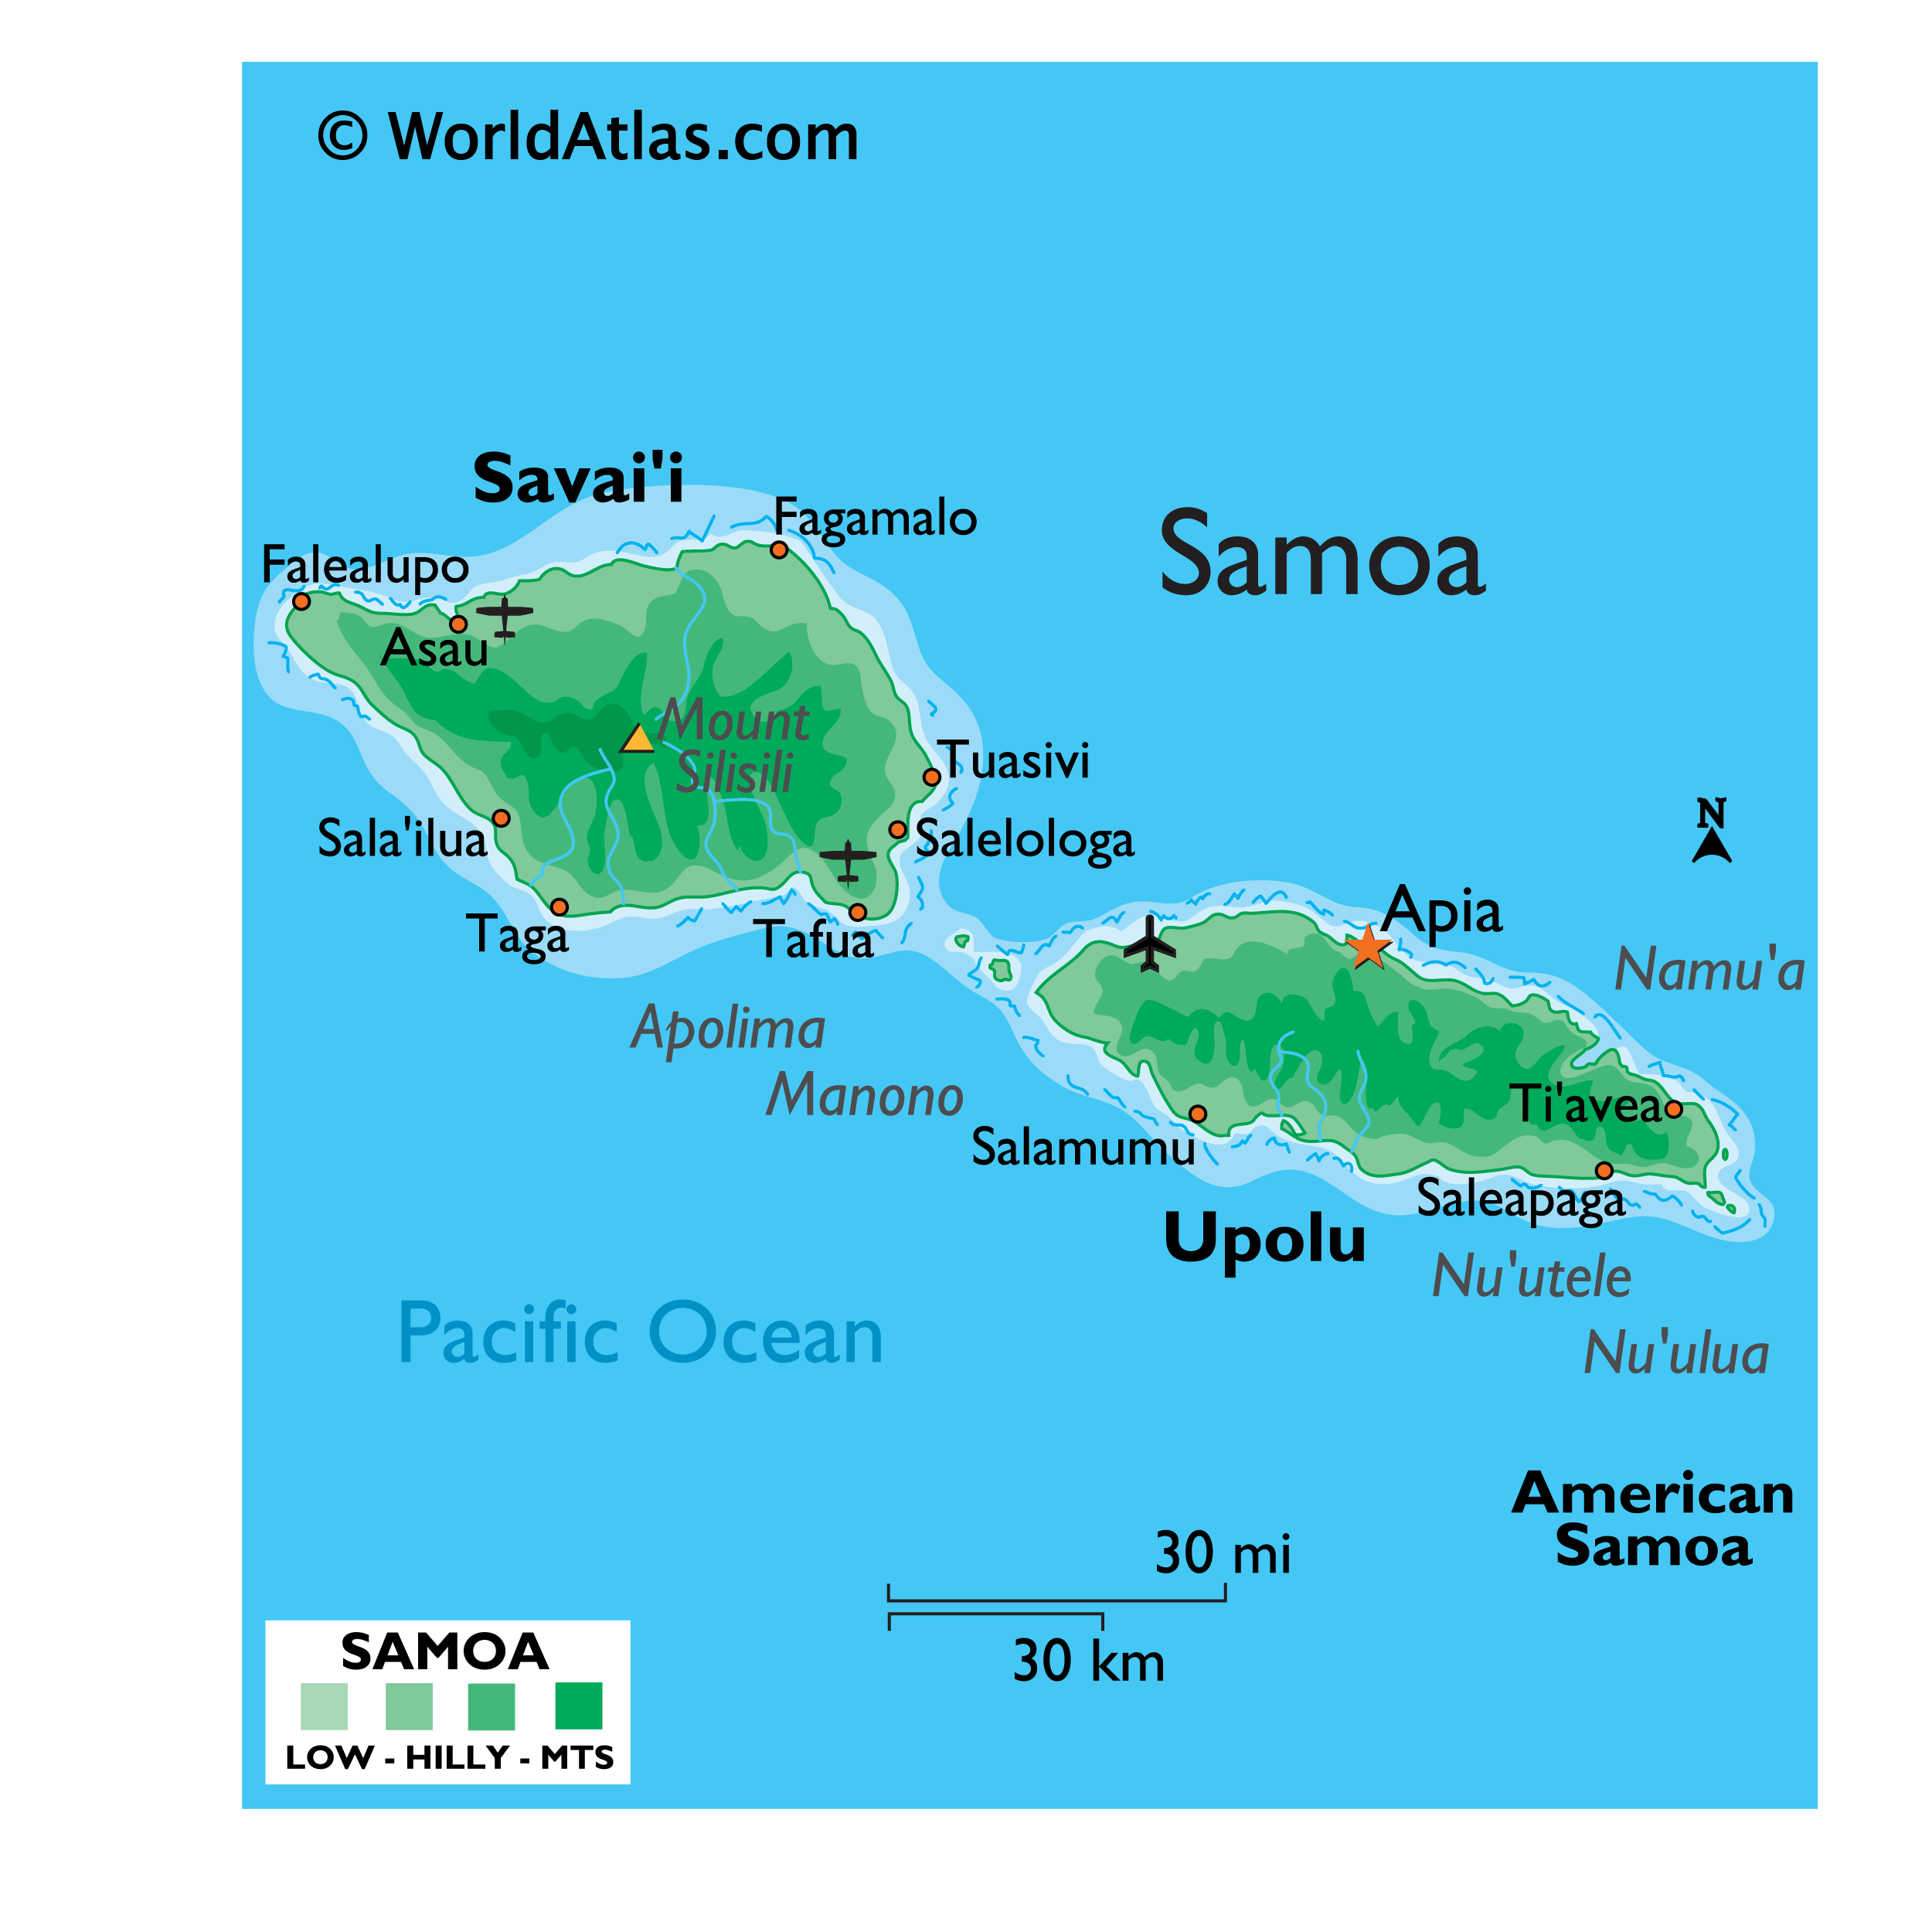 Physical Map of Samoa showing relief, major islands, highest point, important settlements, etc.